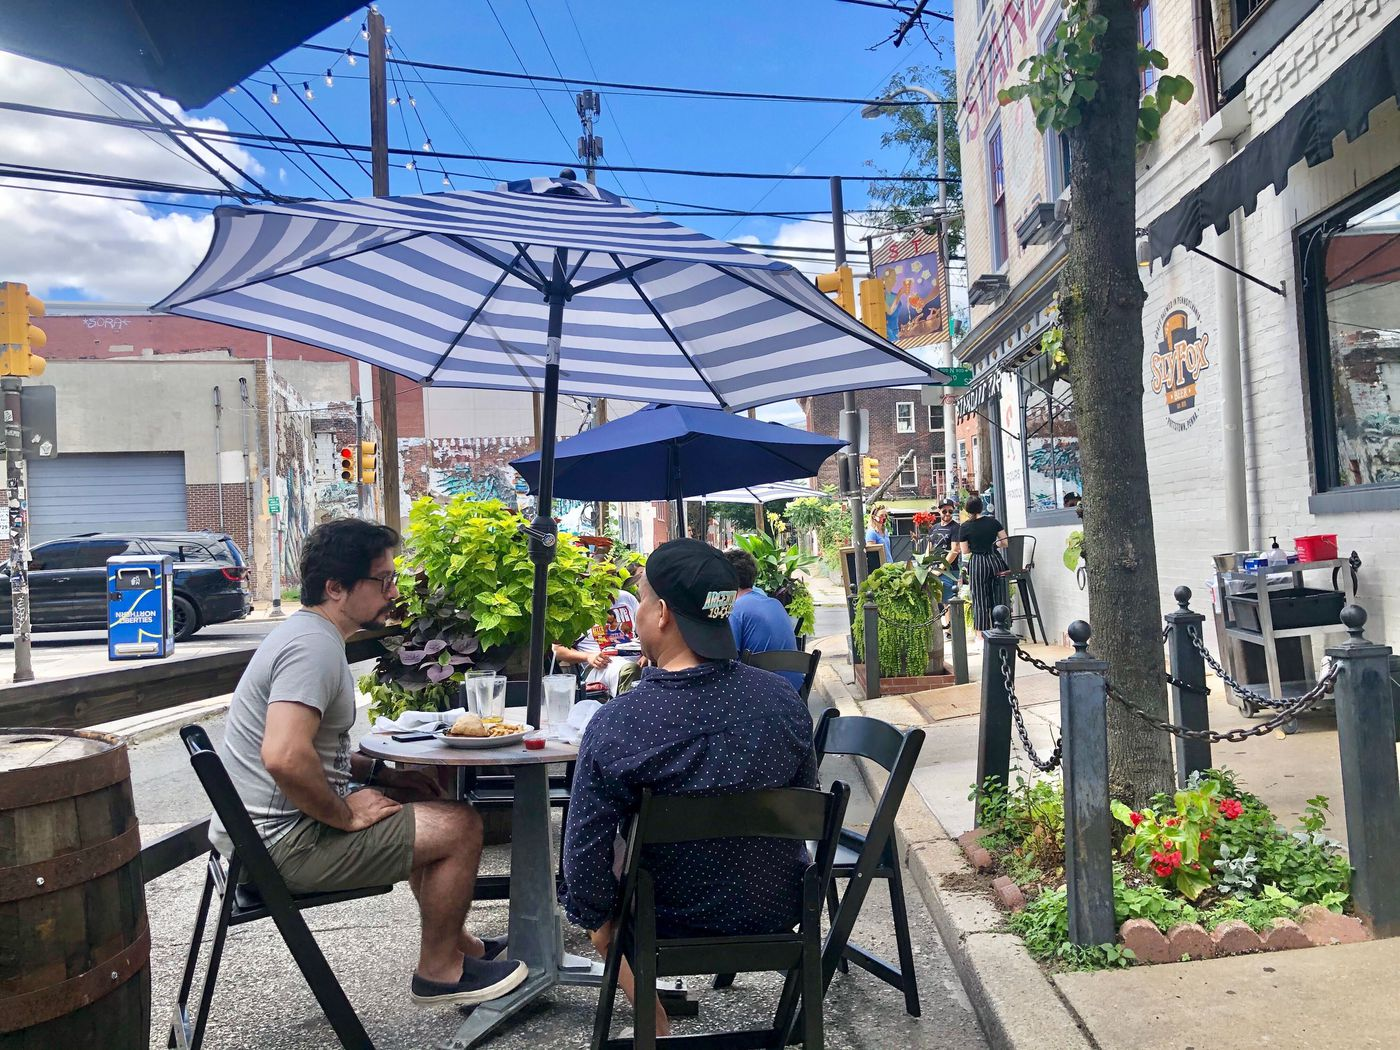 Diners enjoy a weekend brunch outdoors on the Poplar Street side of Standard Tap in Northern Liberties, where the tables are well spaced and landscaped with flowering plants.